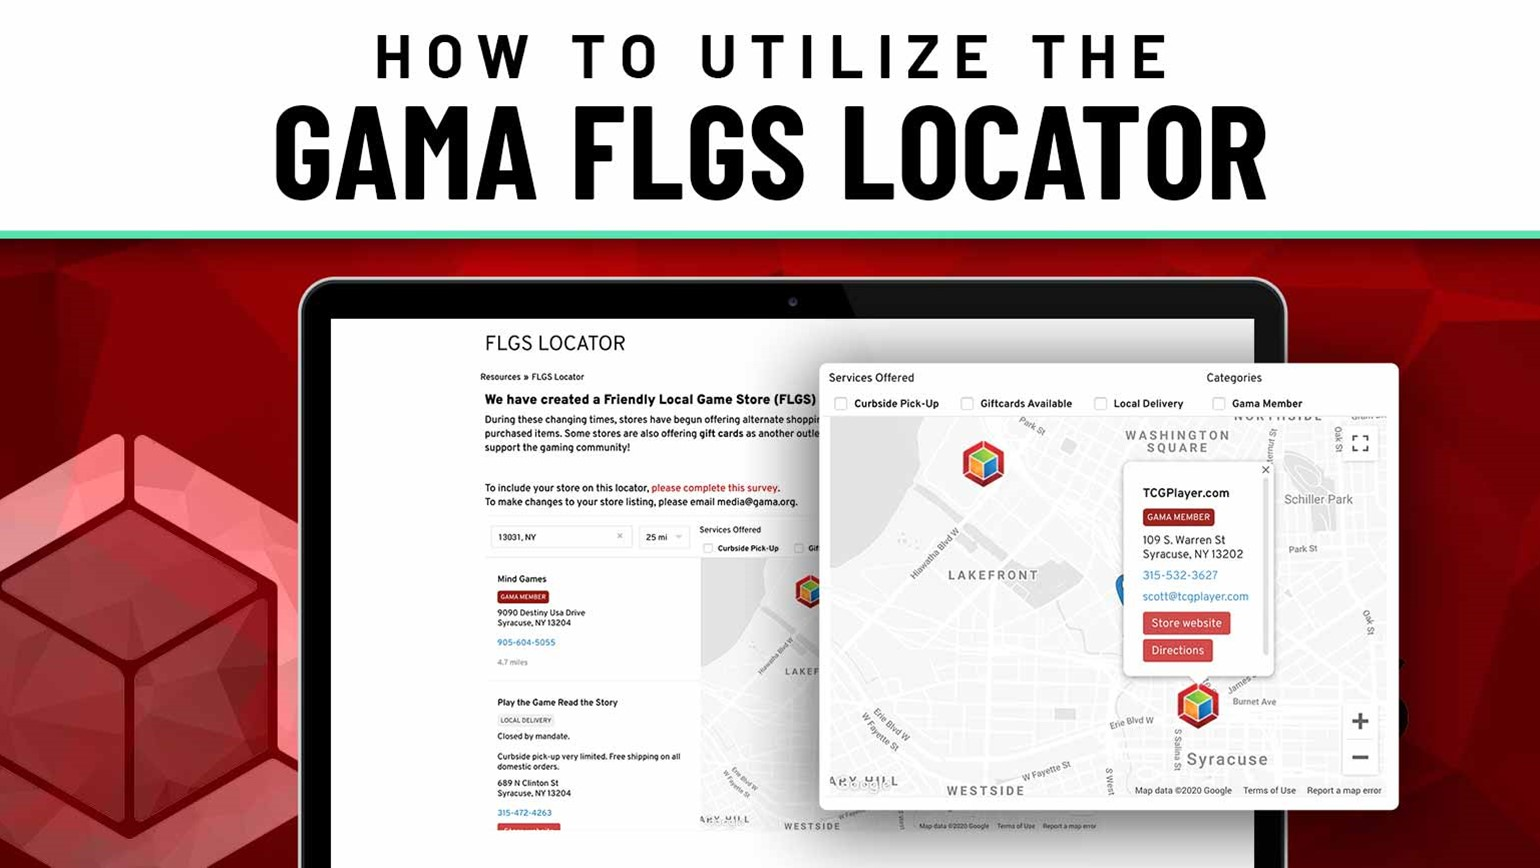 How to Utilize the GAMA FLGS Locator